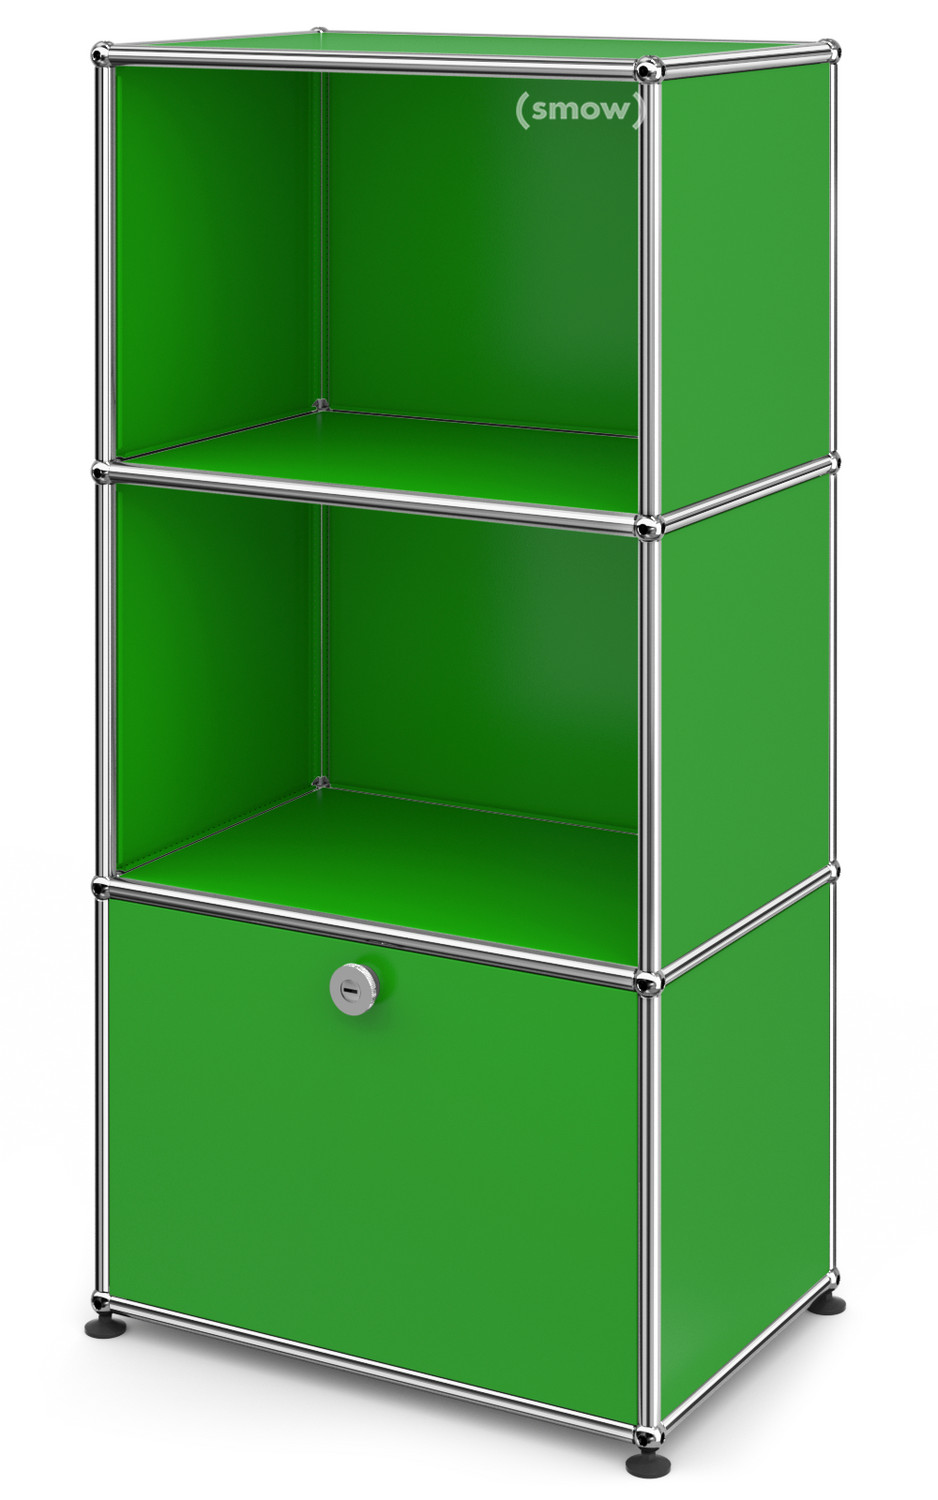 usm haller highboard for kids with 1 drop down door usm green by fritz haller paul sch rer. Black Bedroom Furniture Sets. Home Design Ideas